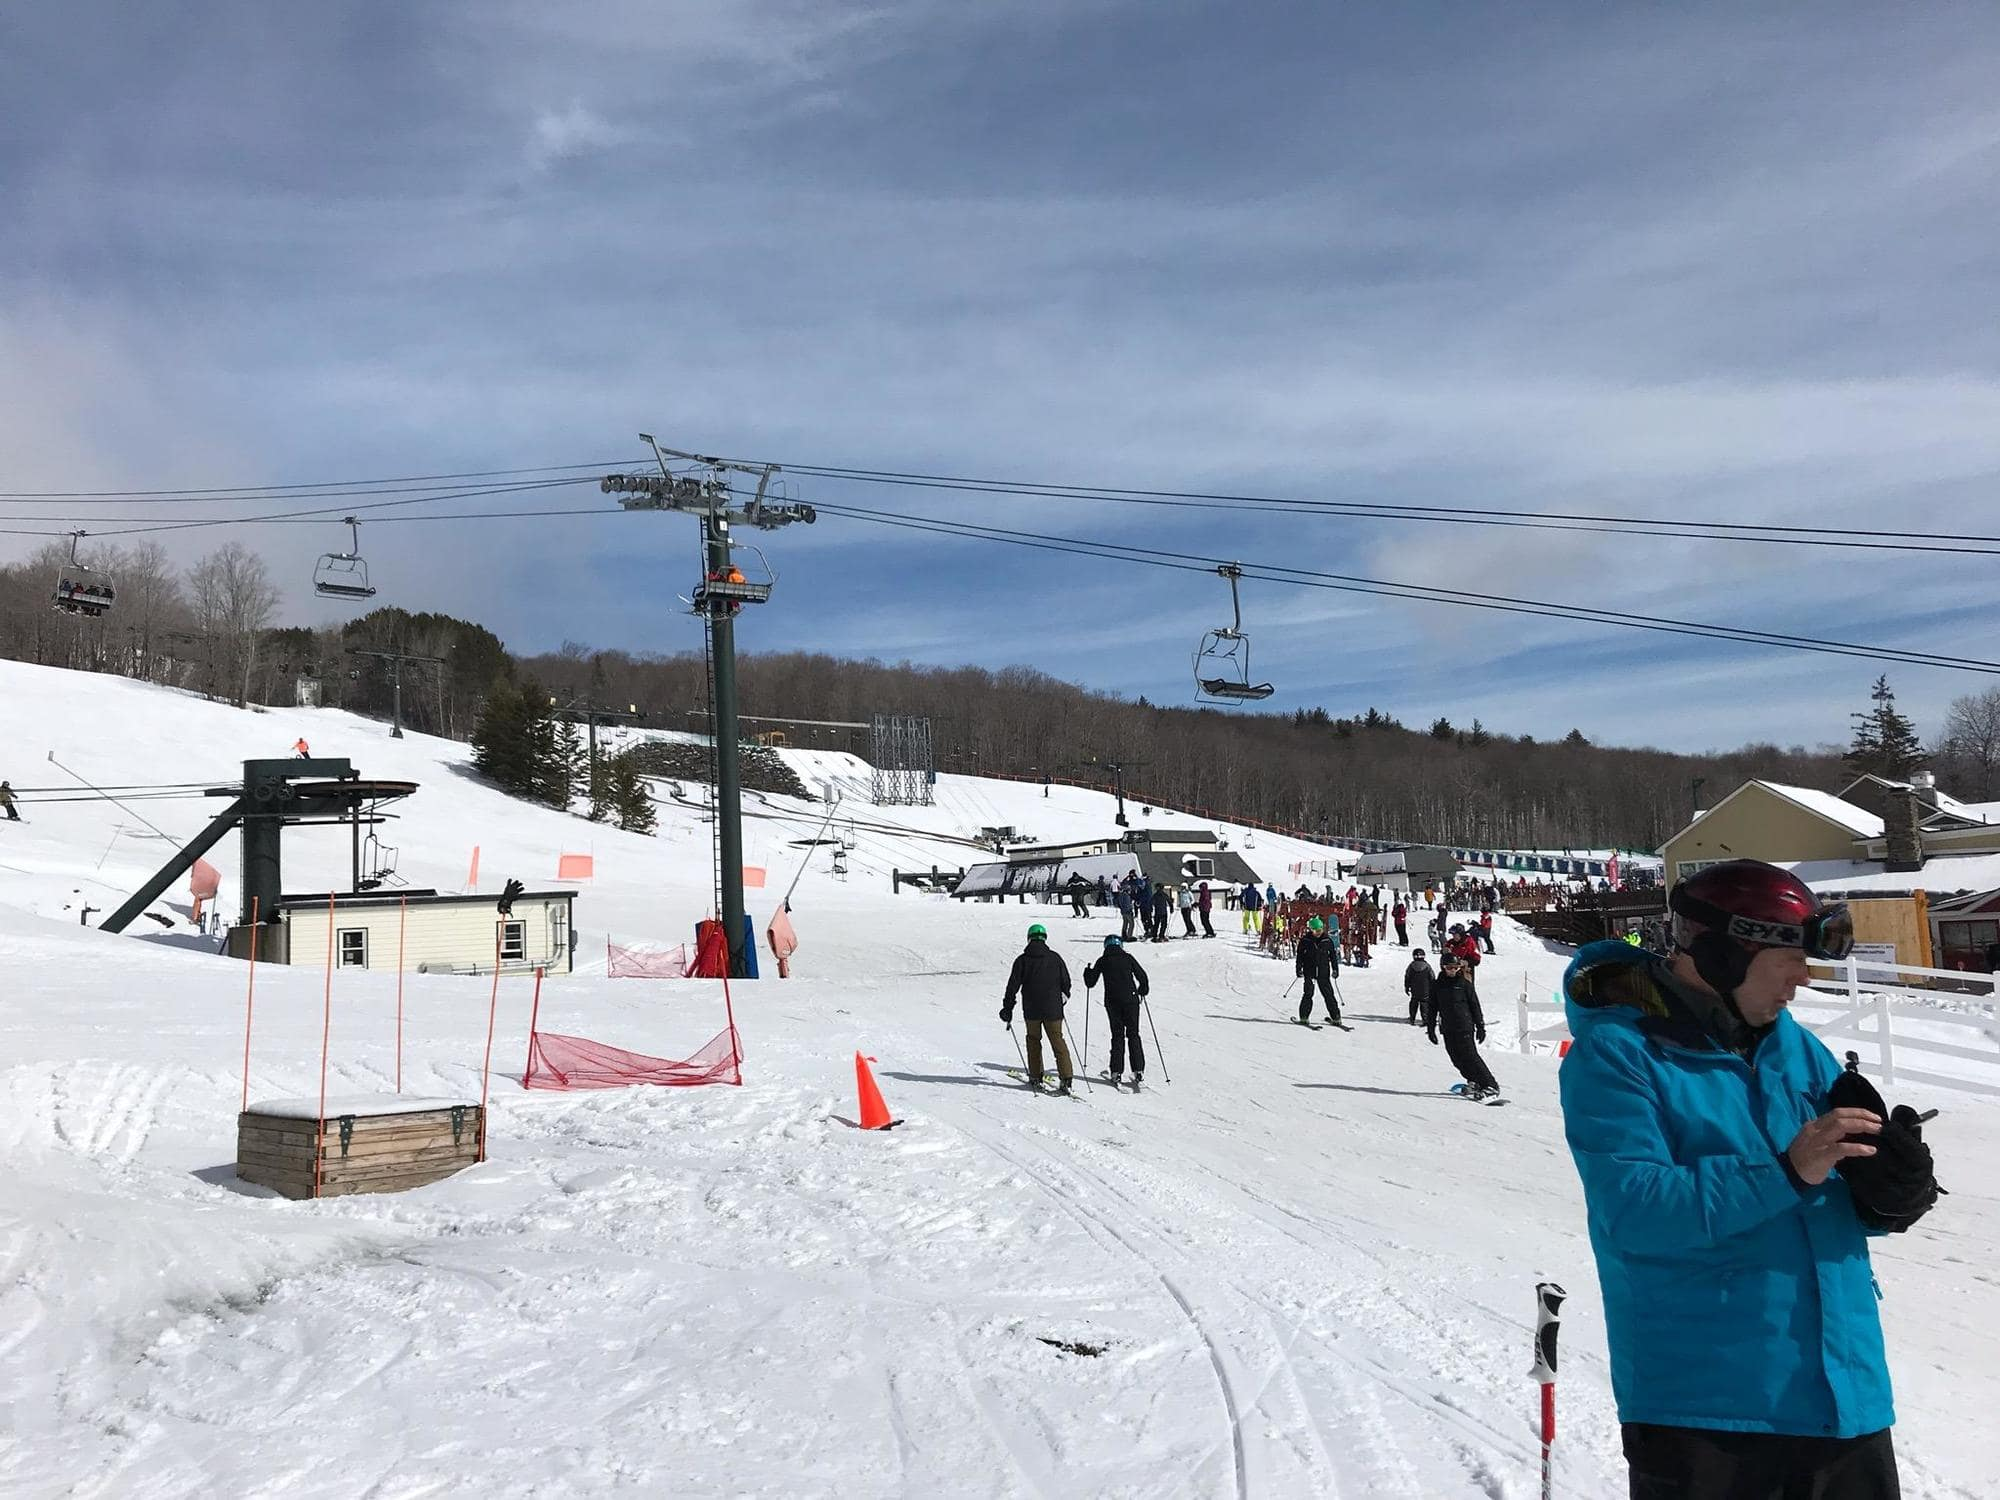 Bromley Mountain / Looking for some great East Coast ski slopes to learn to ski on? Read our list of the best New England ski resorts that are perfect for beginners.